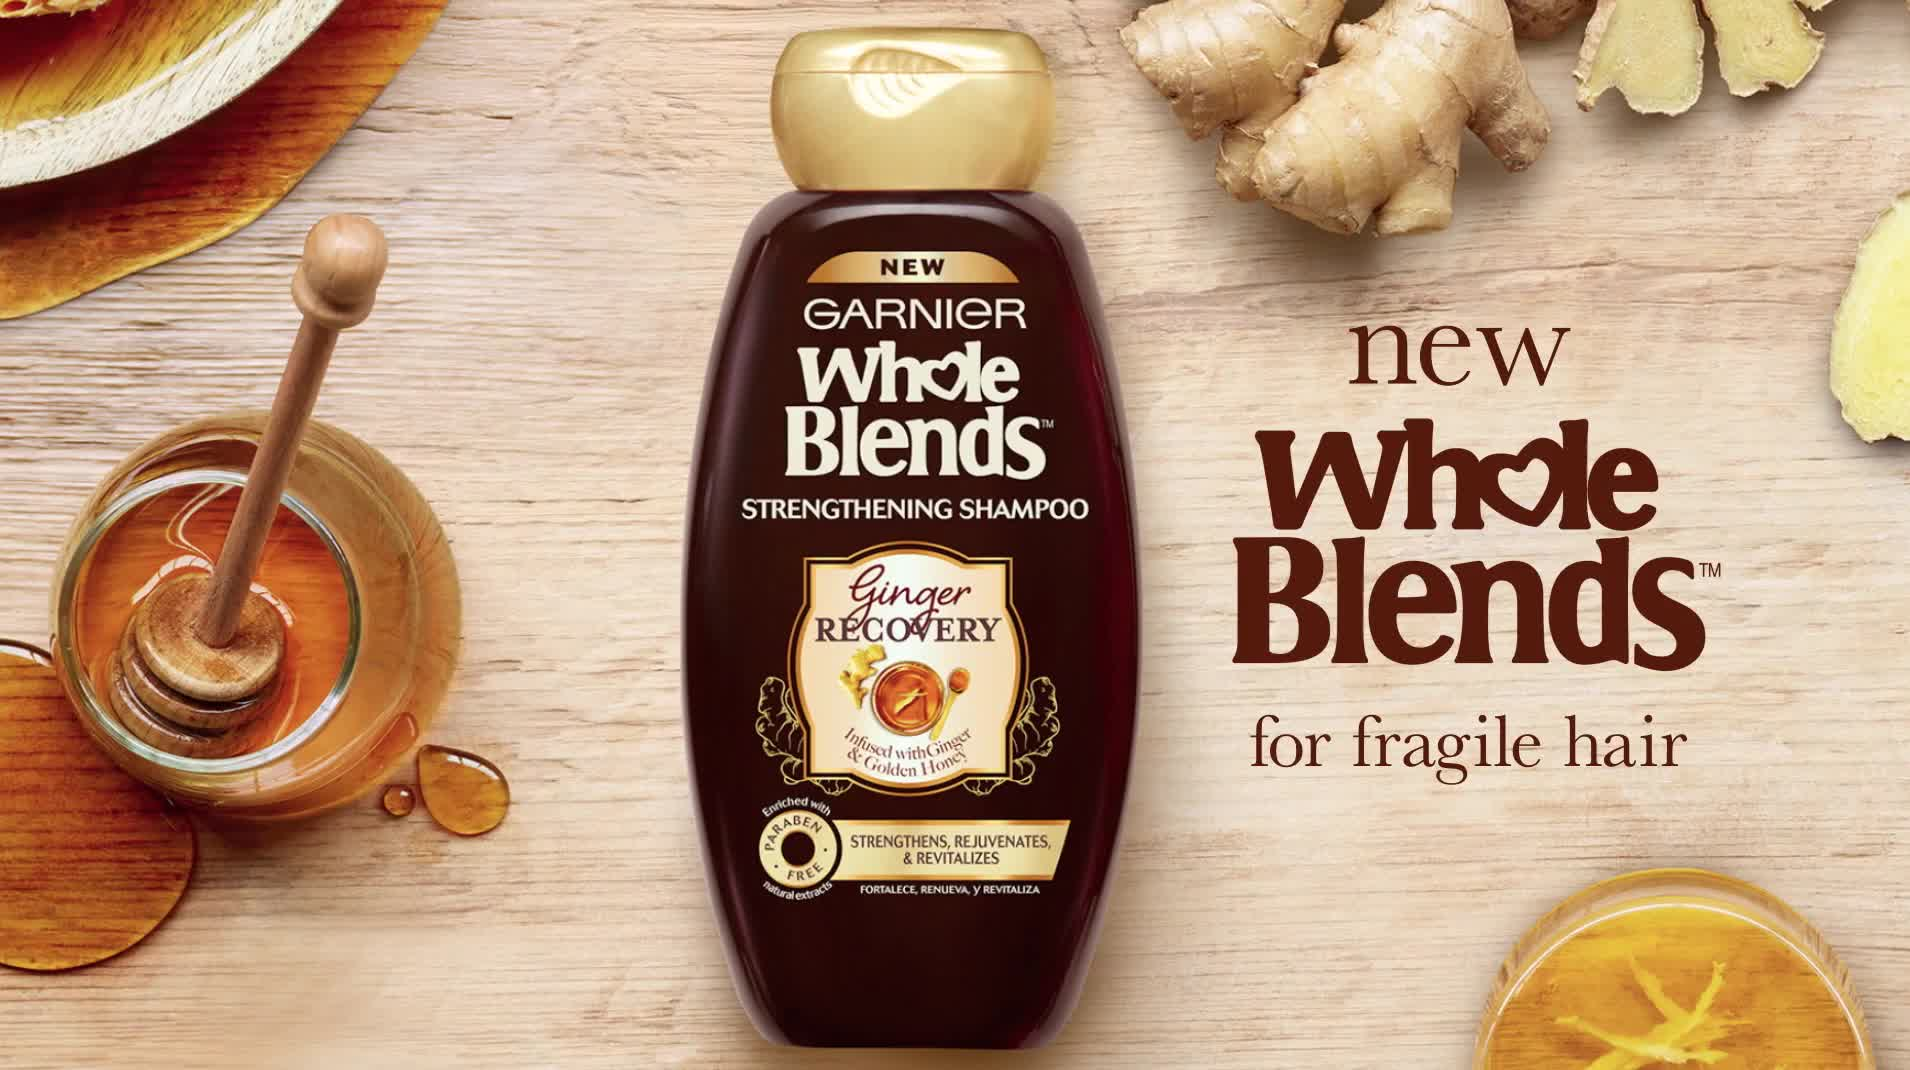 Blended Makes Us Better: Whole Blends Strengthening Haircare Ginger Recovery| Garnier Whole Blends